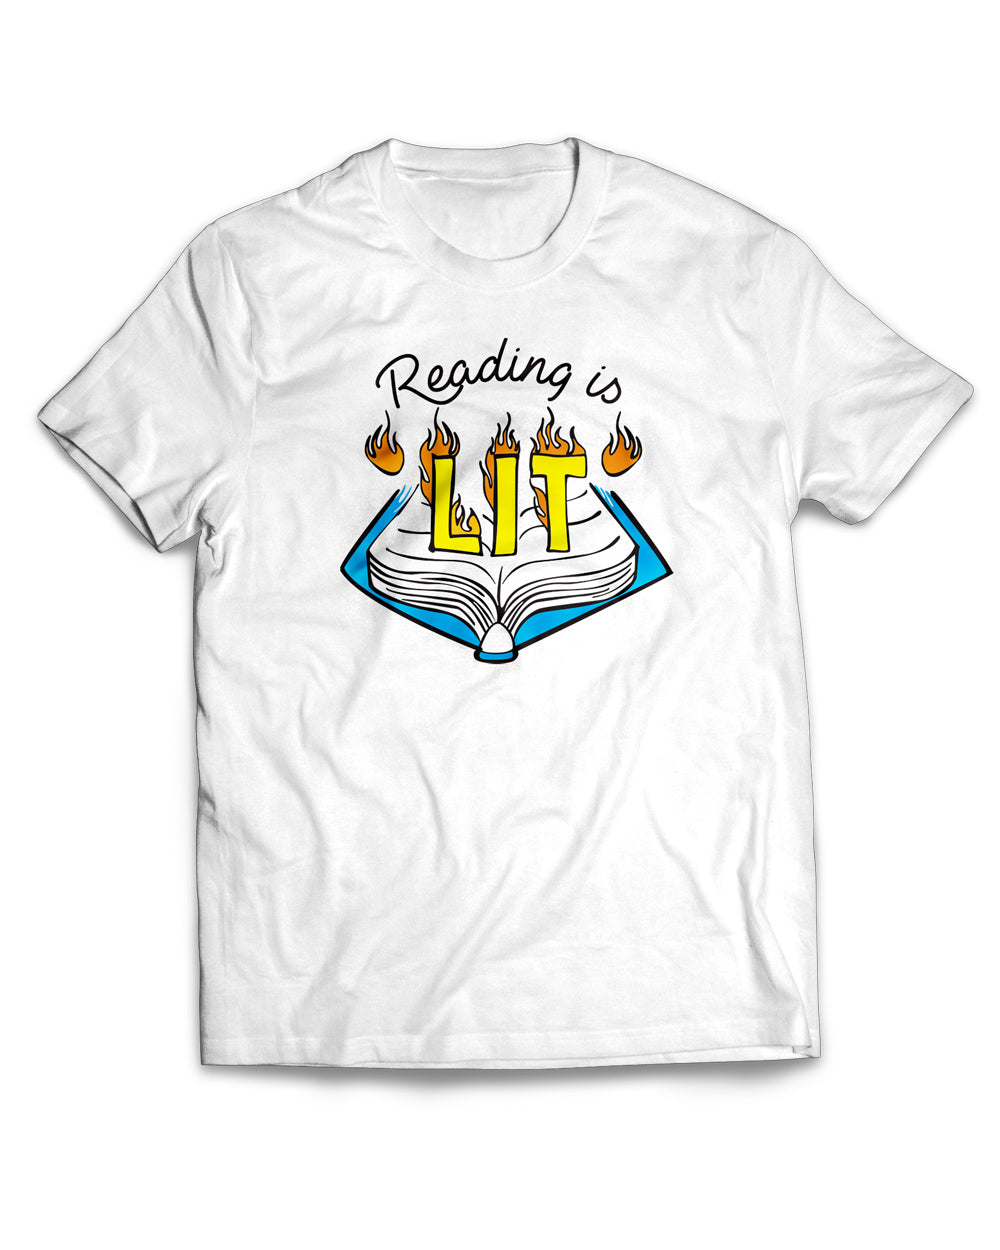 Reading is Lit Make Original White T-Shirt Mens